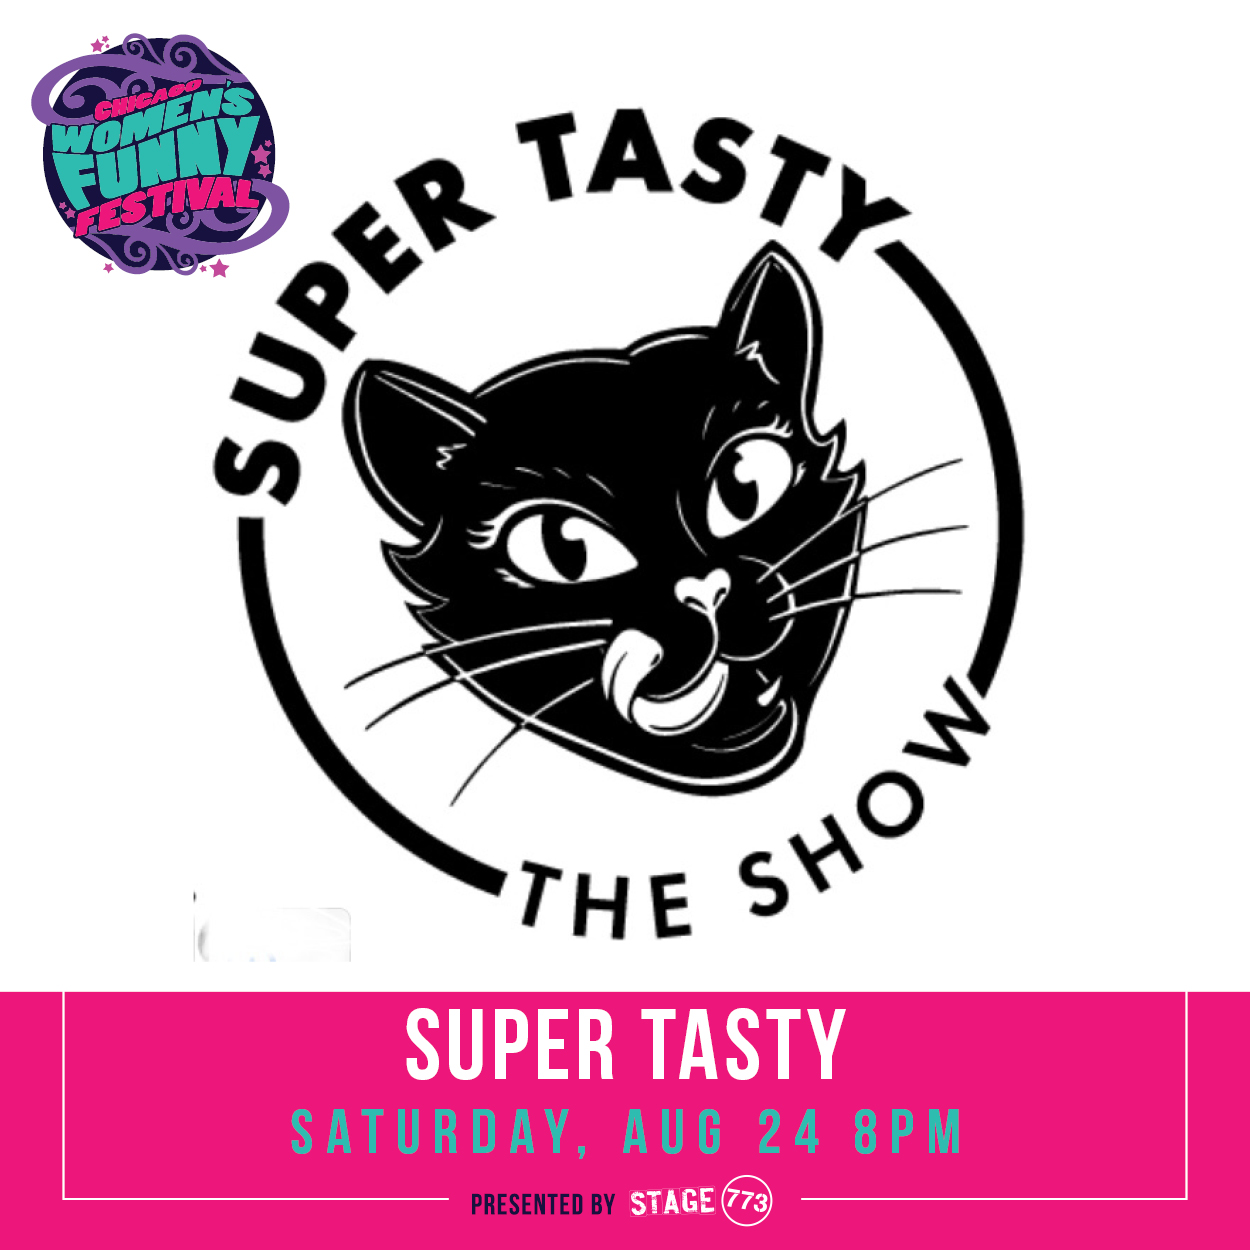 SuperTasty_Saturday_8PM_CWFF20195.jpg